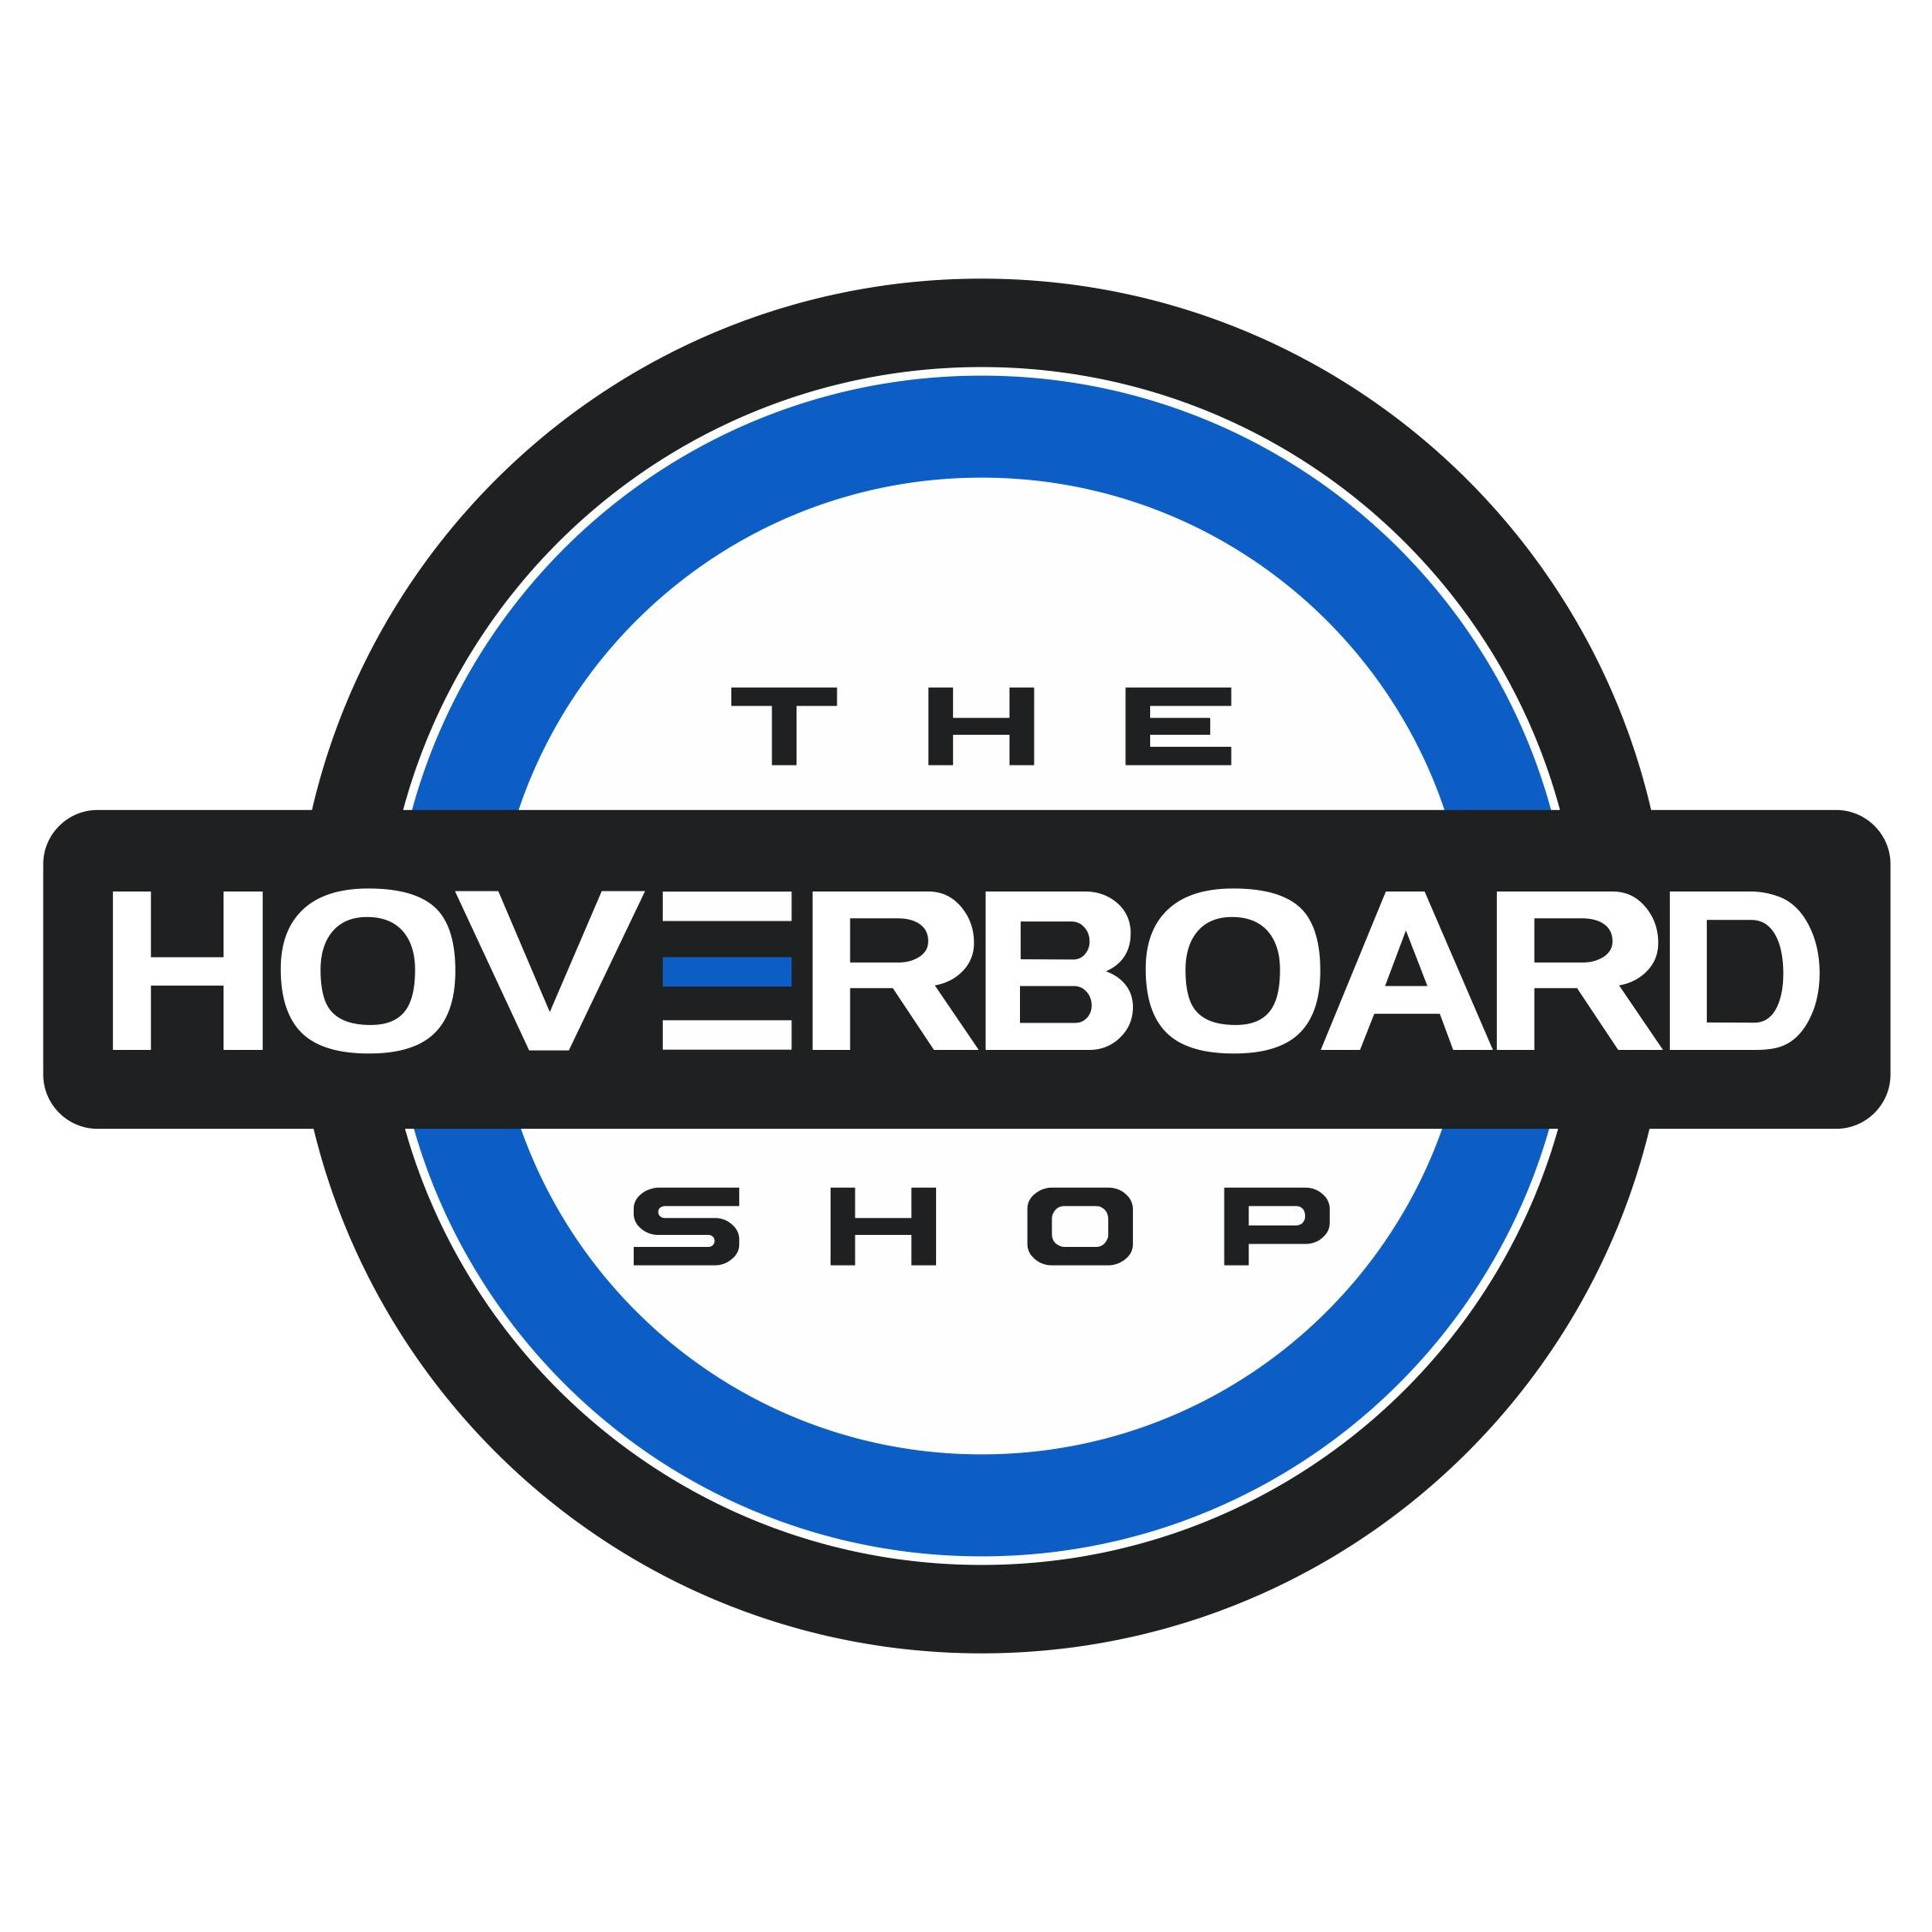 The Hoverboard Shop Coupons Near Me In Wauwatosa